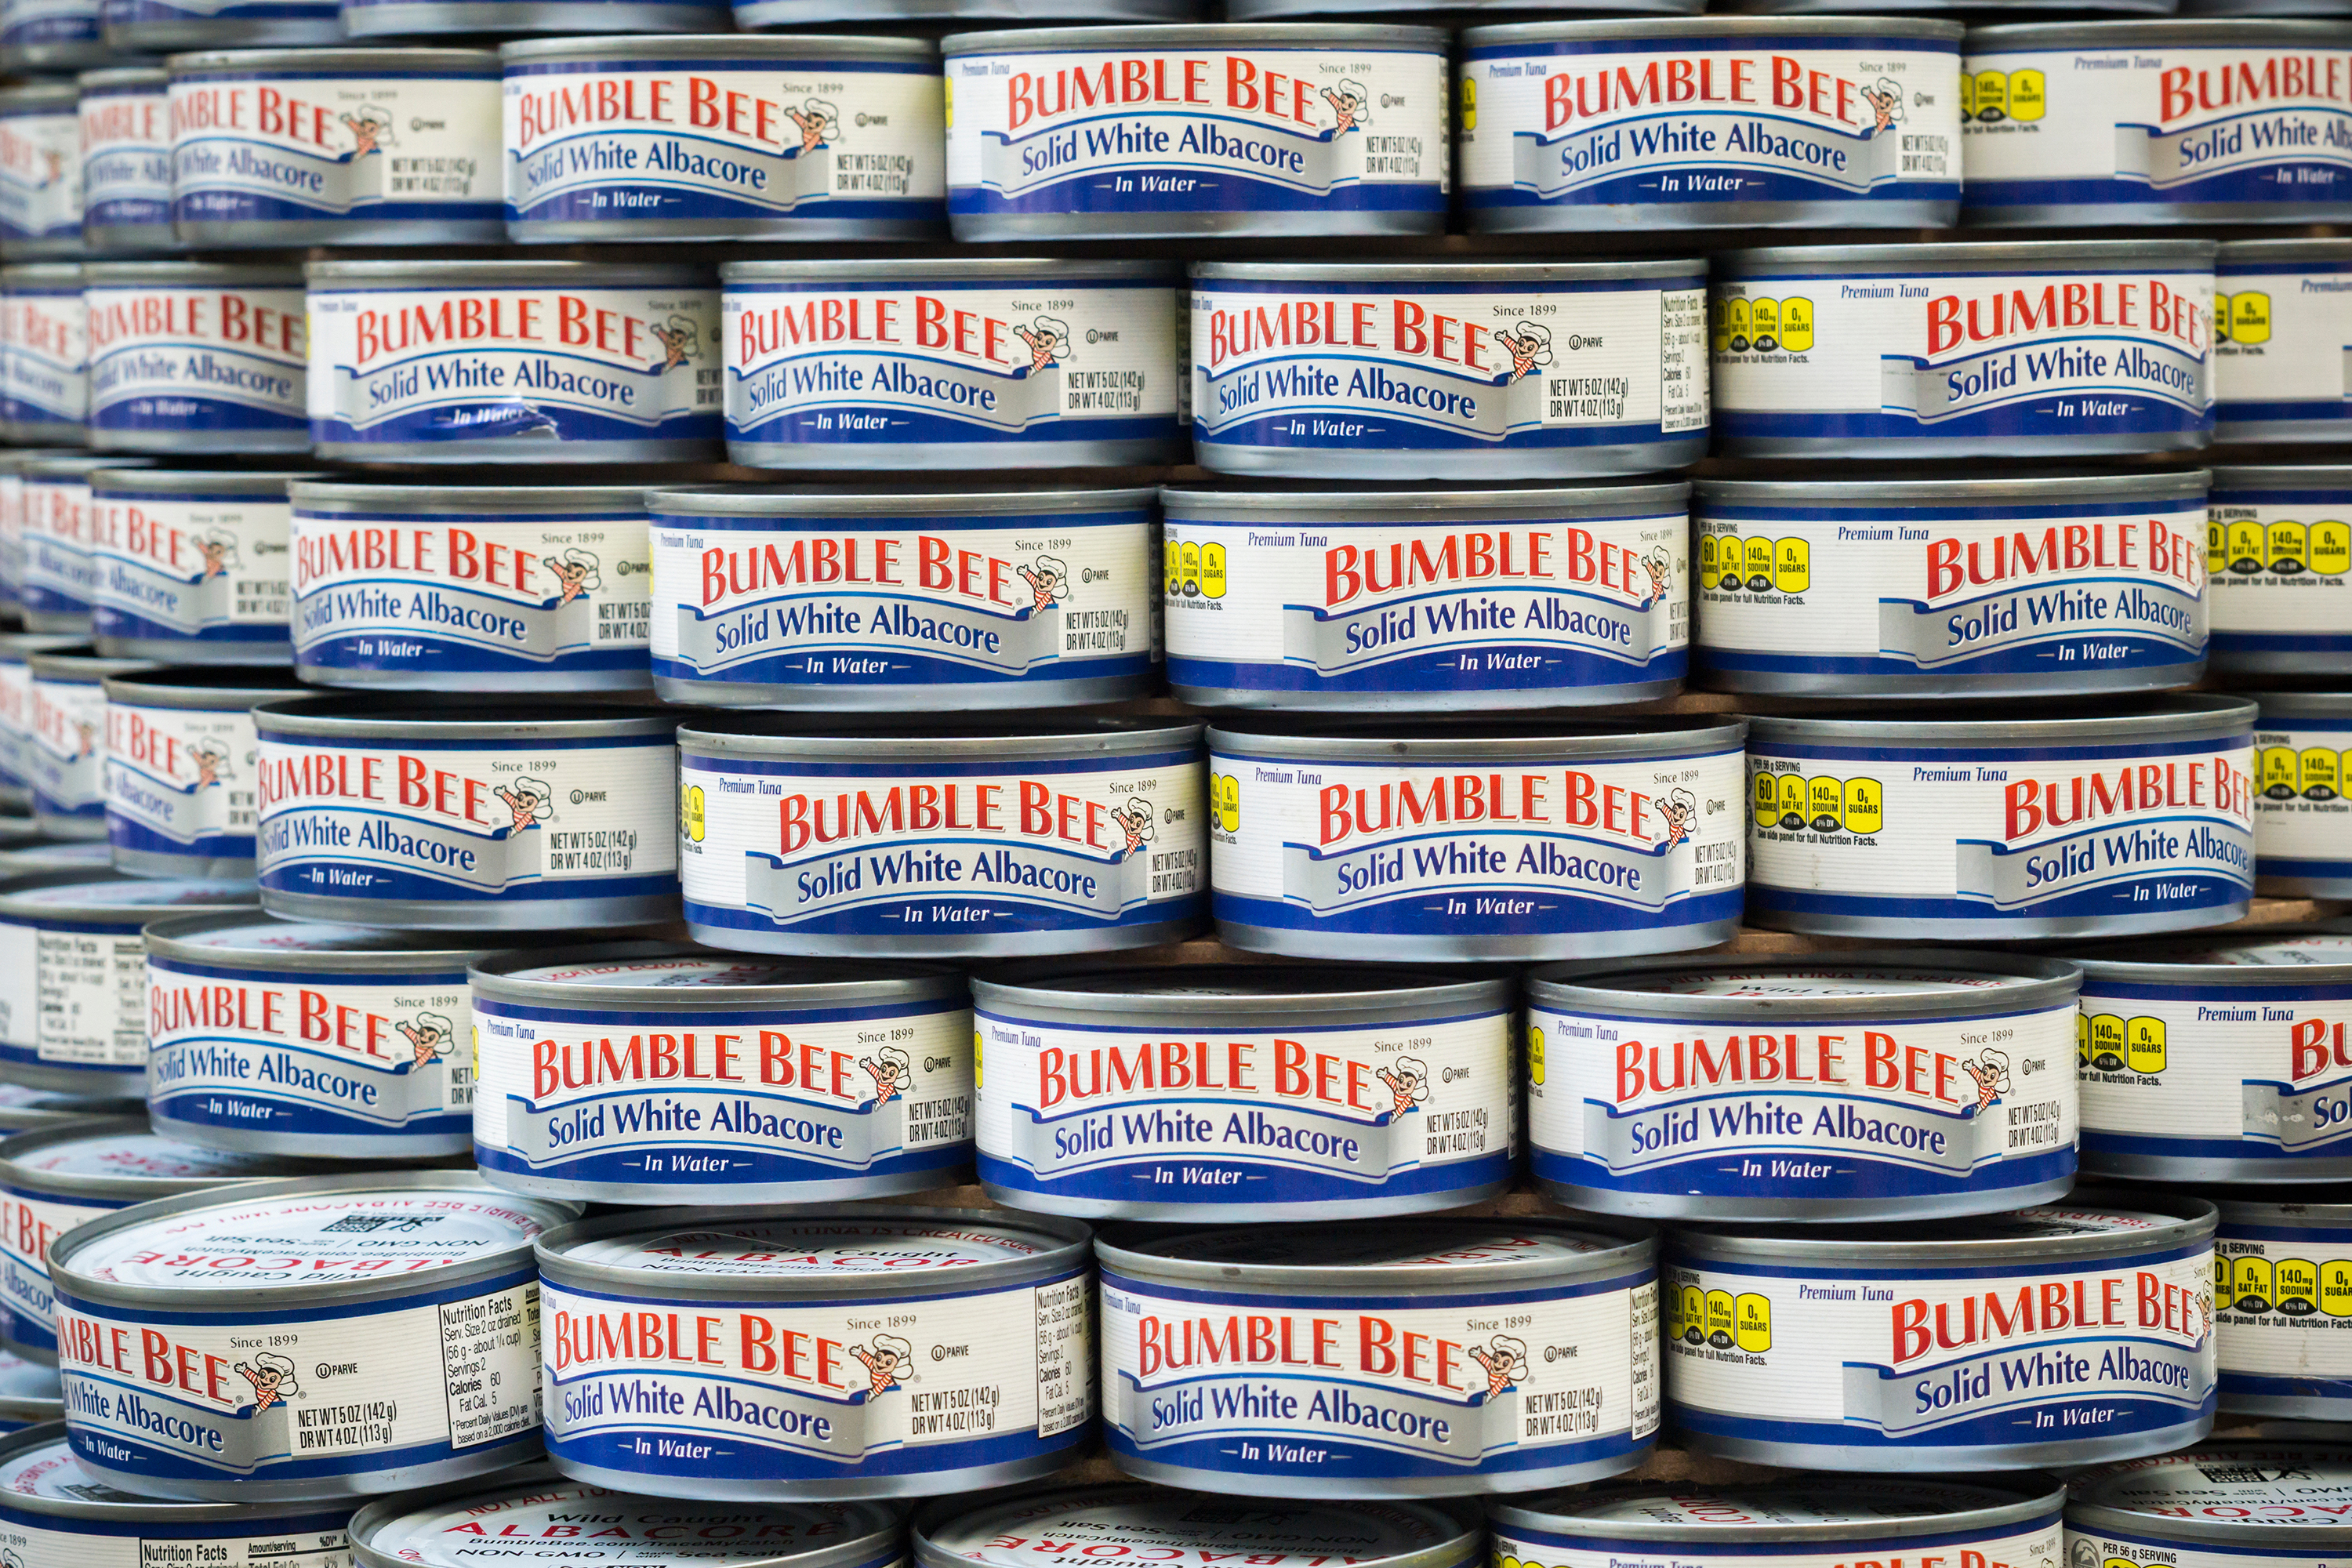 Trump says protesters are throwing tuna. Bumble Bee urges consumers to 'Eat em. Don't throw em'